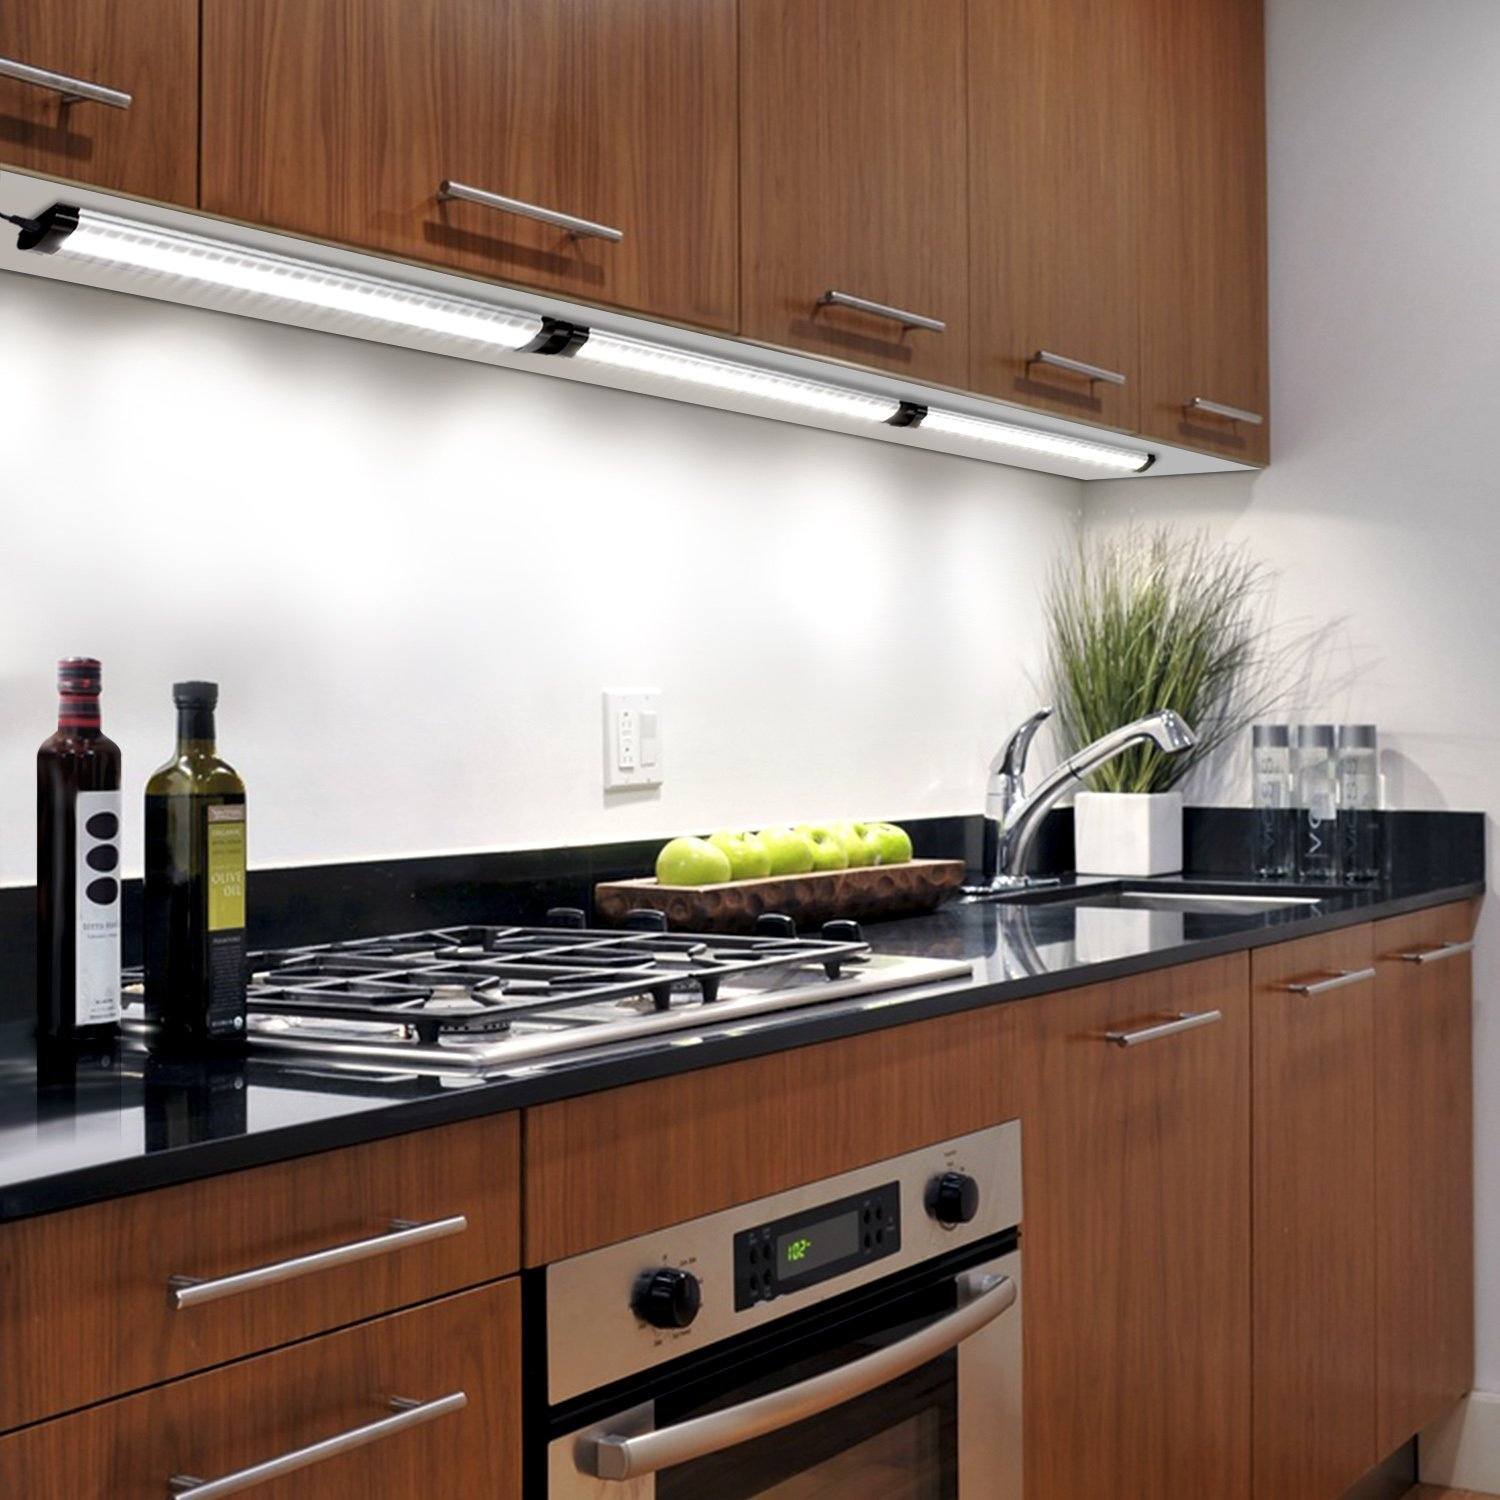 albrillo led under cabinet lighting dimmable cool white 6000k 12w